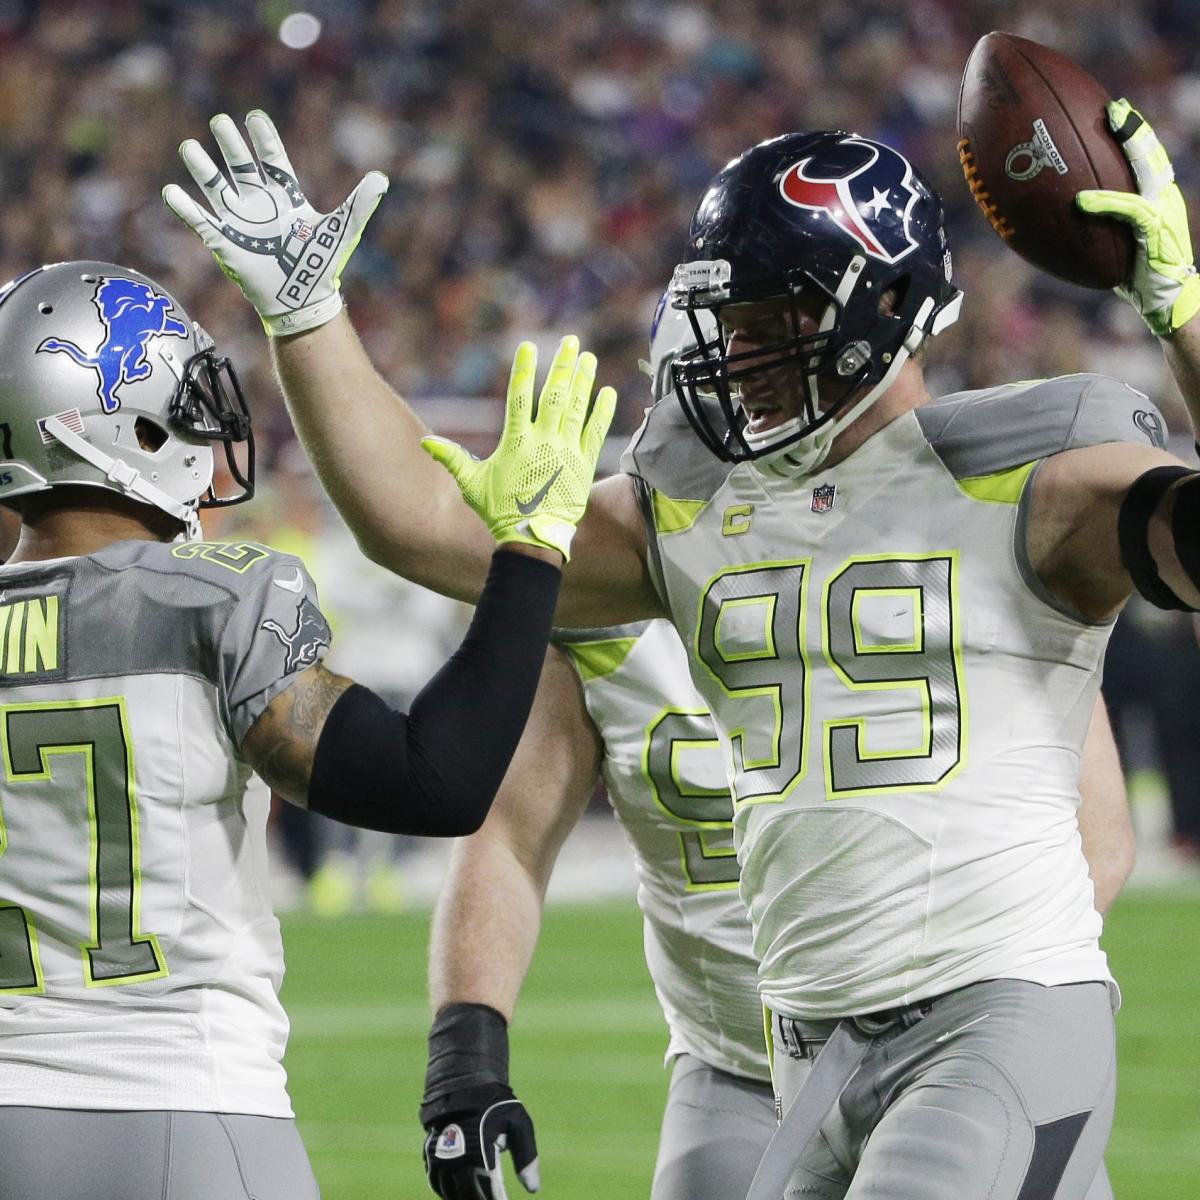 save off 8b13f 77814 Pro Bowl 2015: Final Score and Stats for NFL Showcase's Top ...